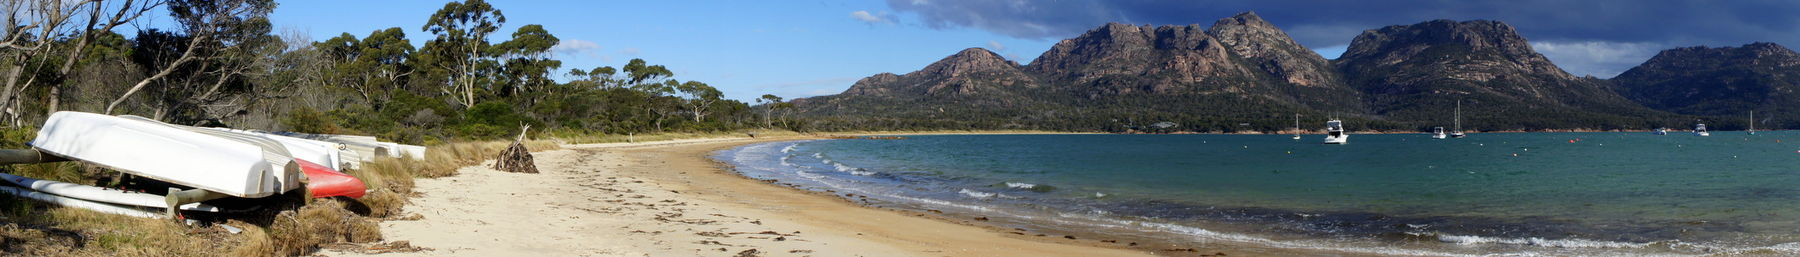 Freycinet banner The Hazards.JPG